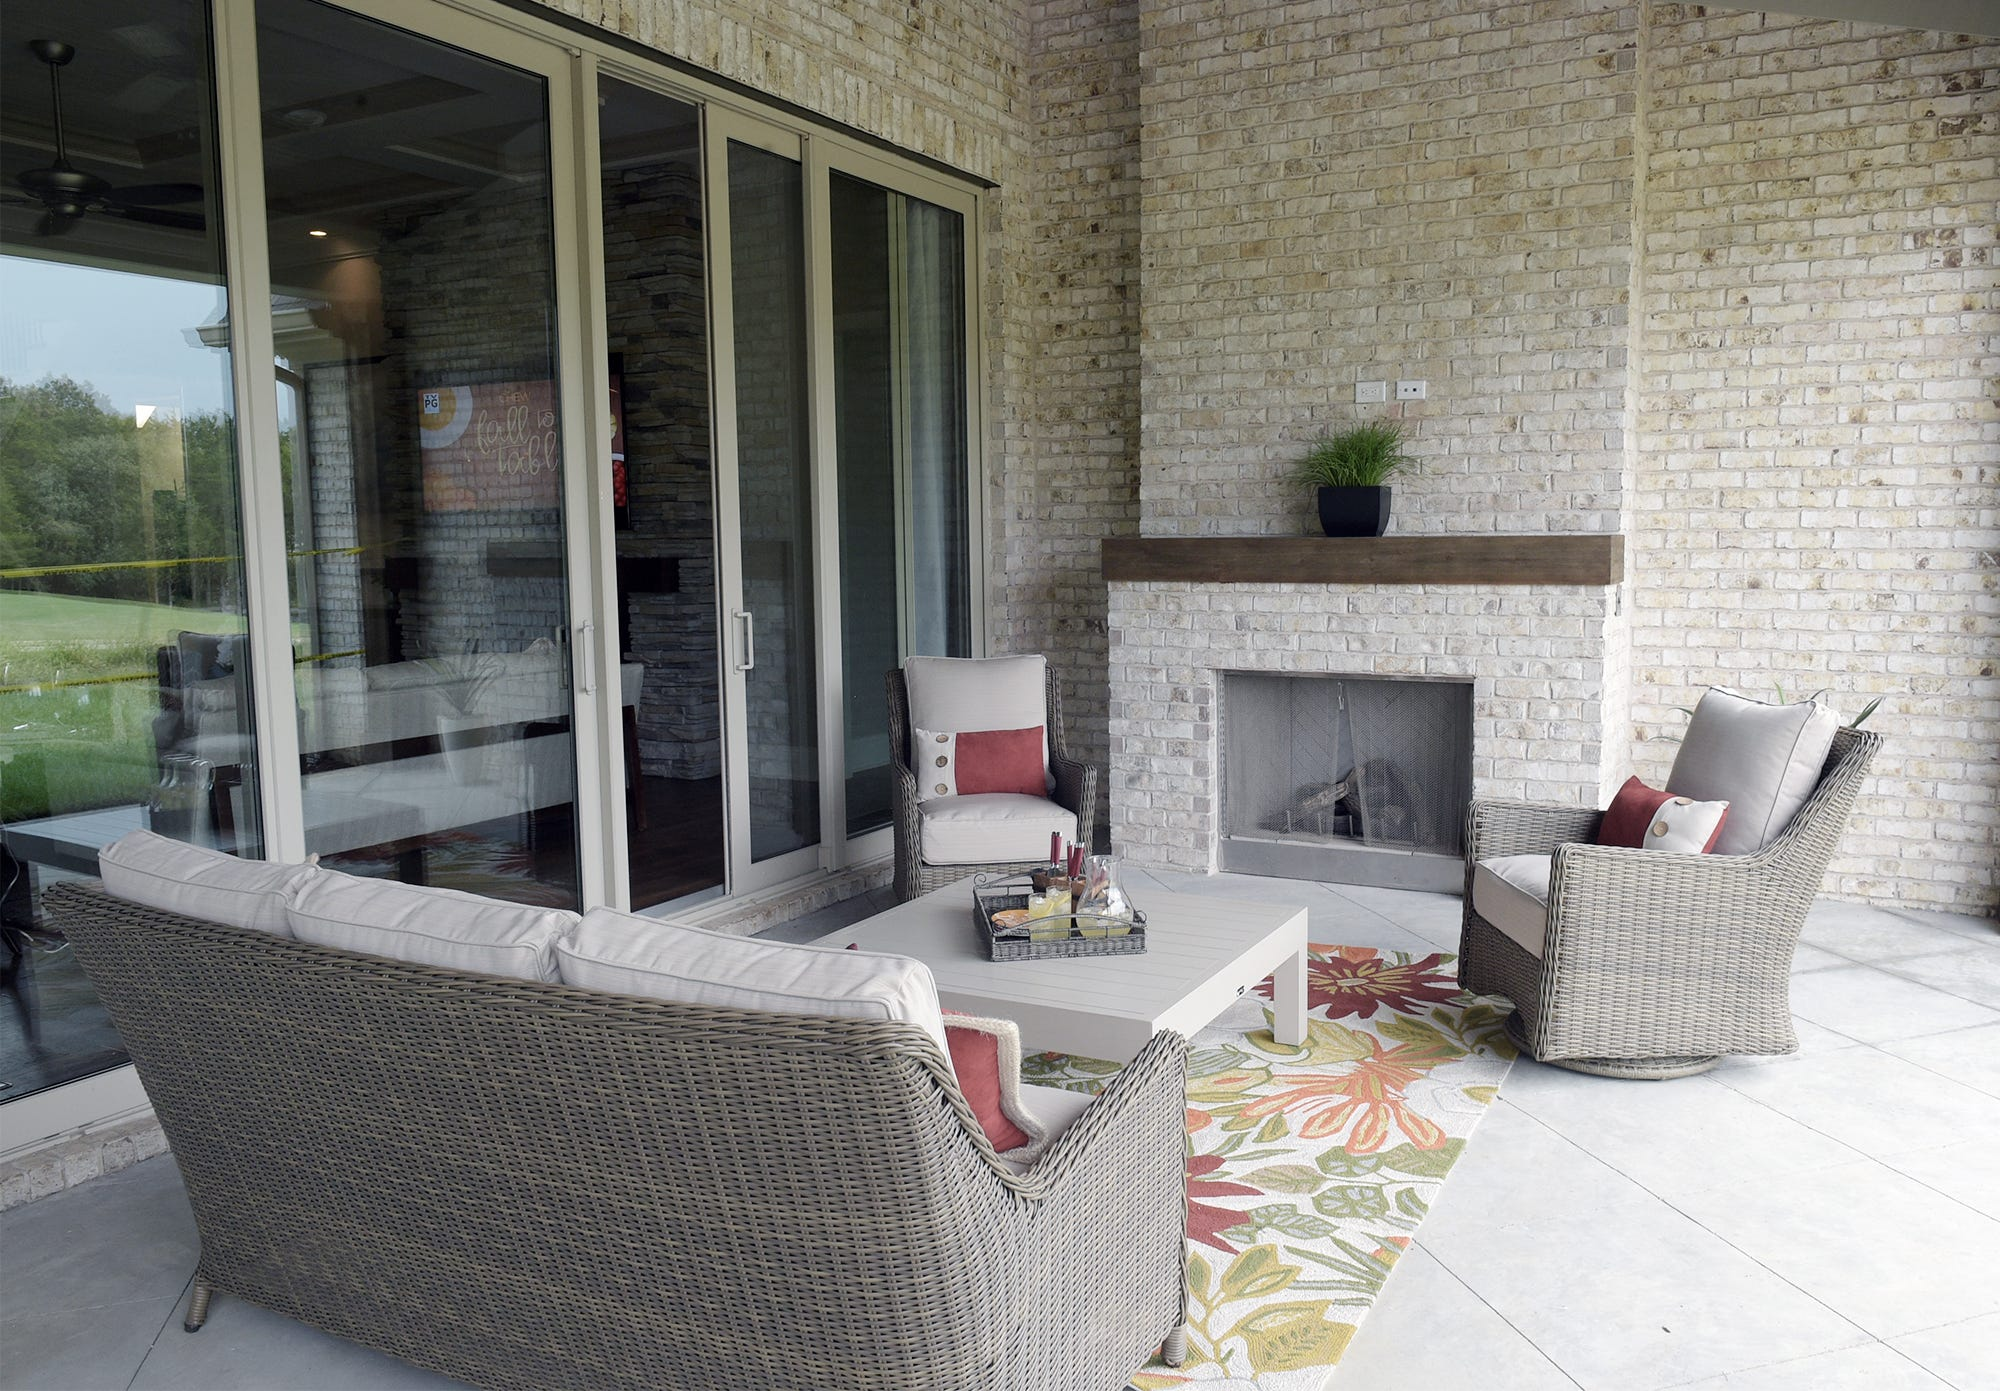 This Yearu0027s Parade Of Homes Is Located At The Hideaway, Interior Design  School, Nashville